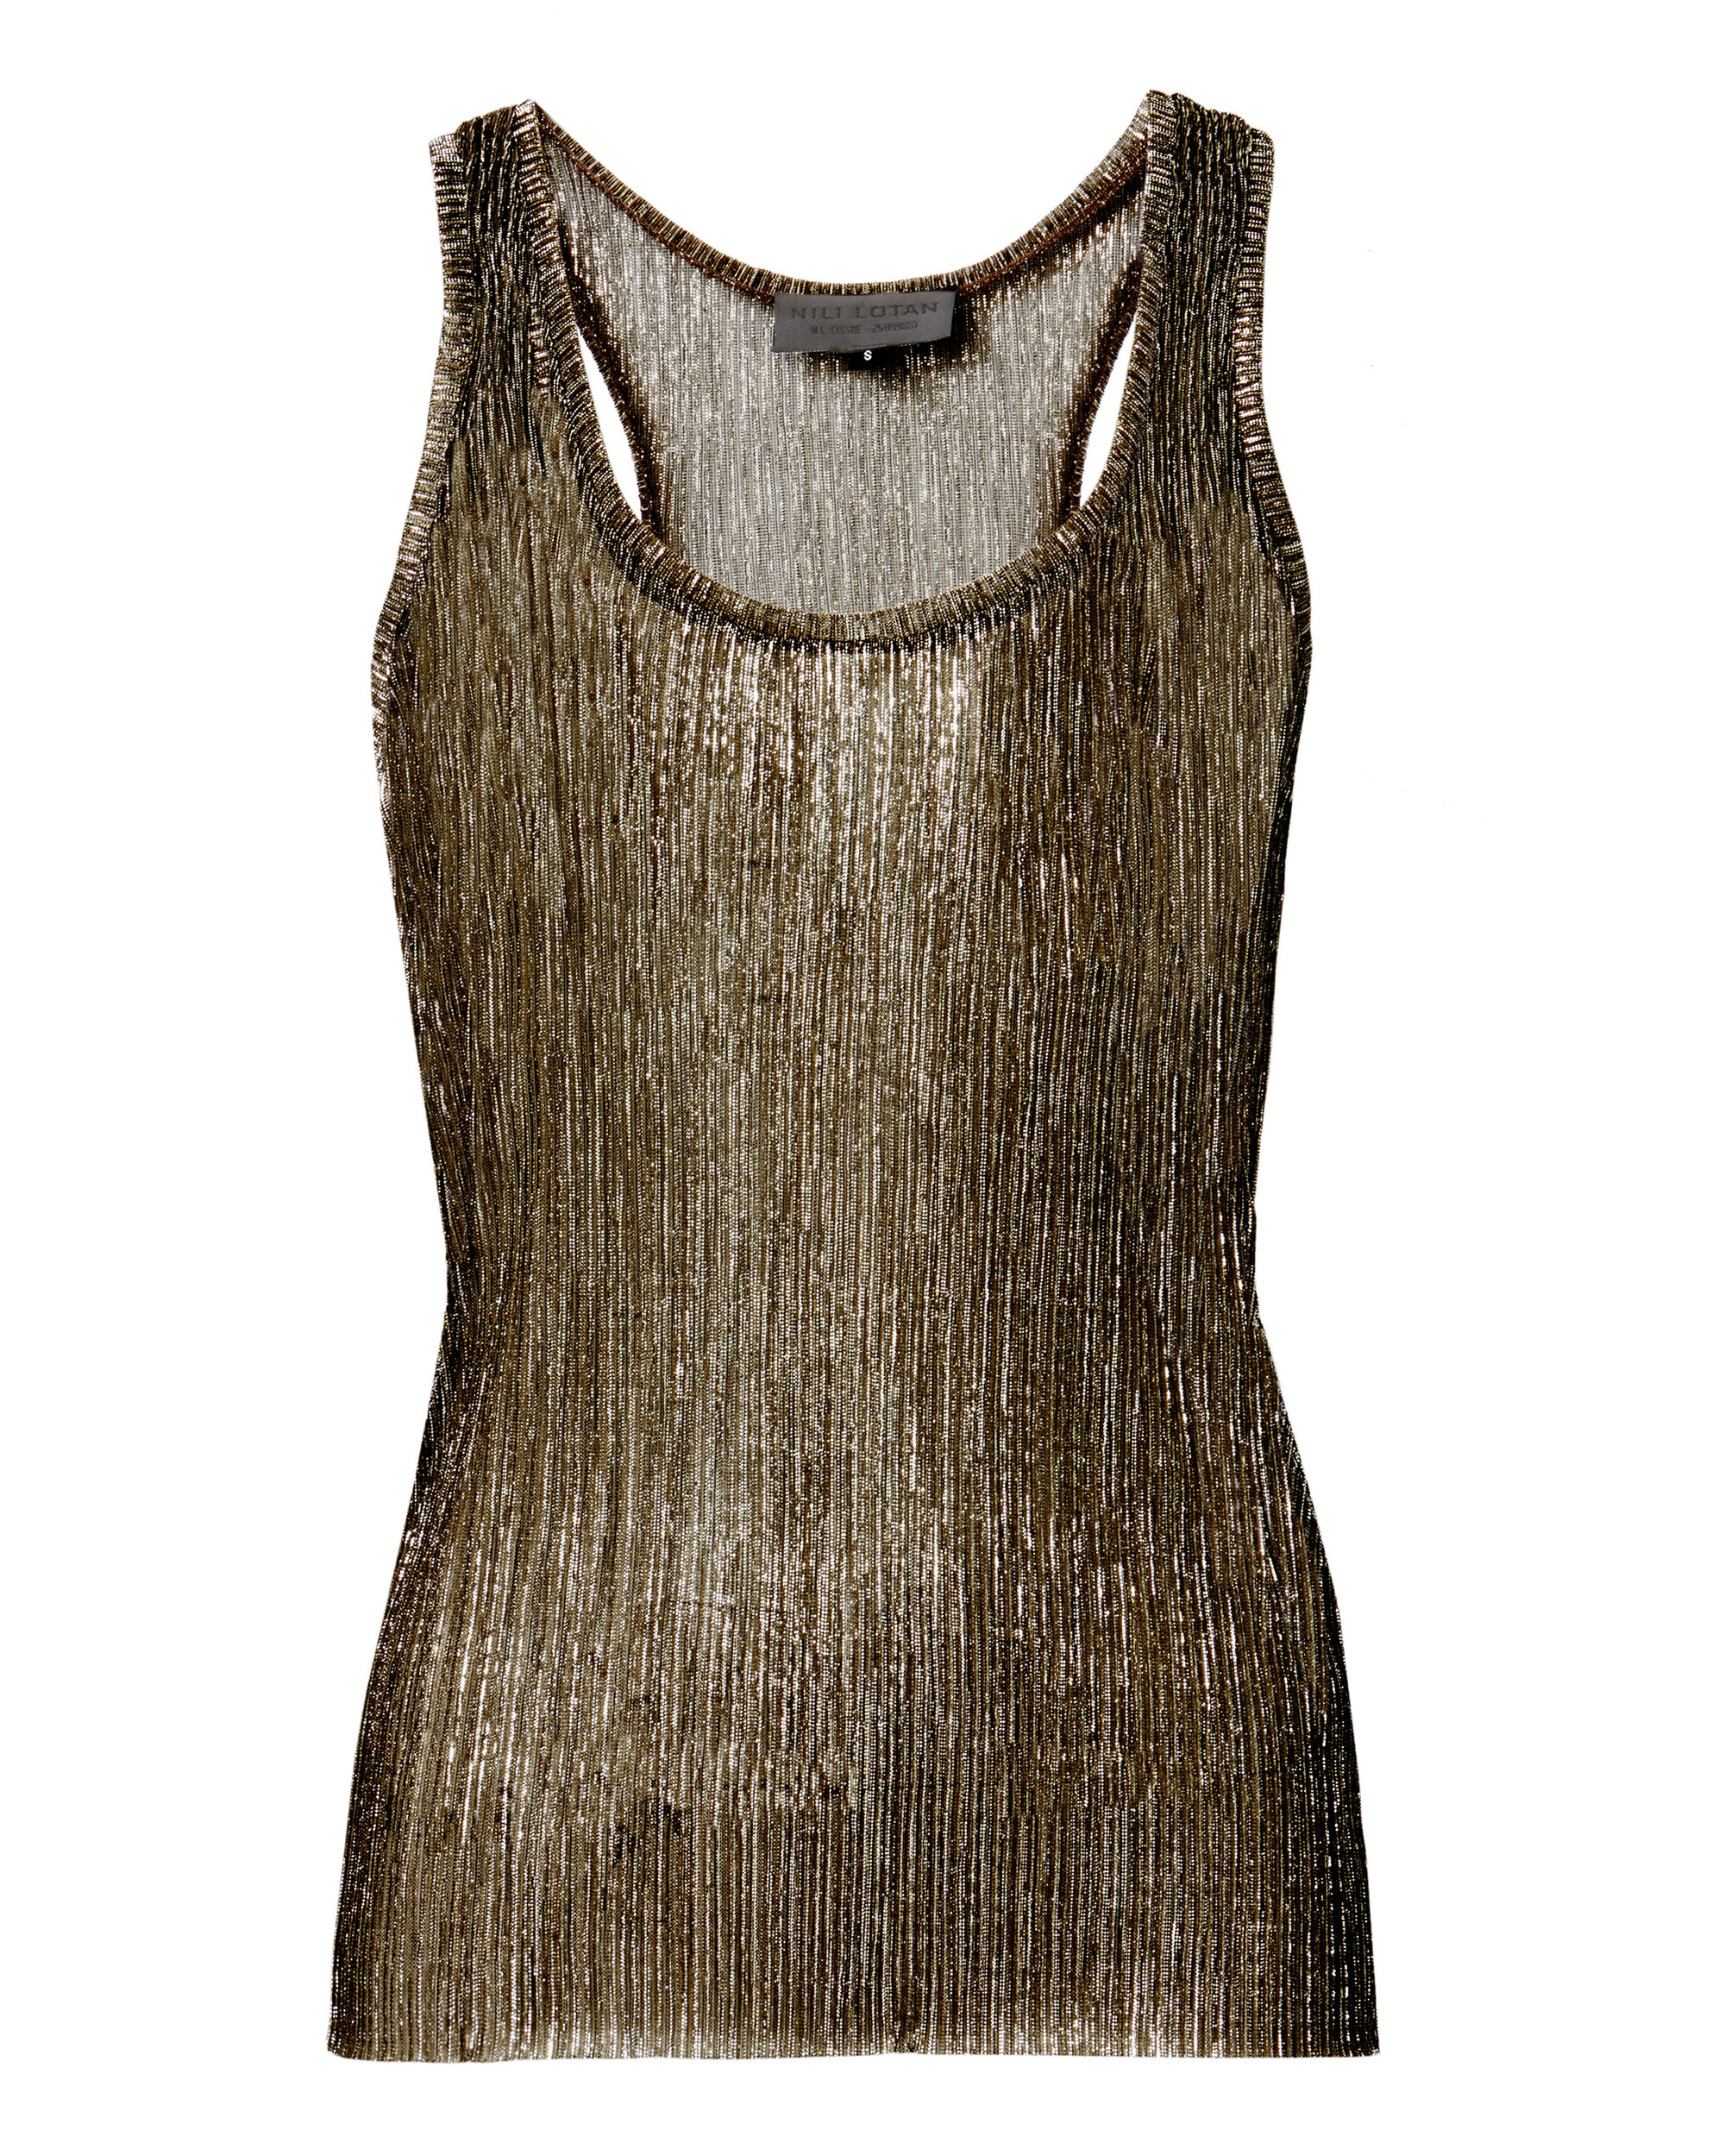 Valentina Gold Lurex Tank, GOLD, hi-res